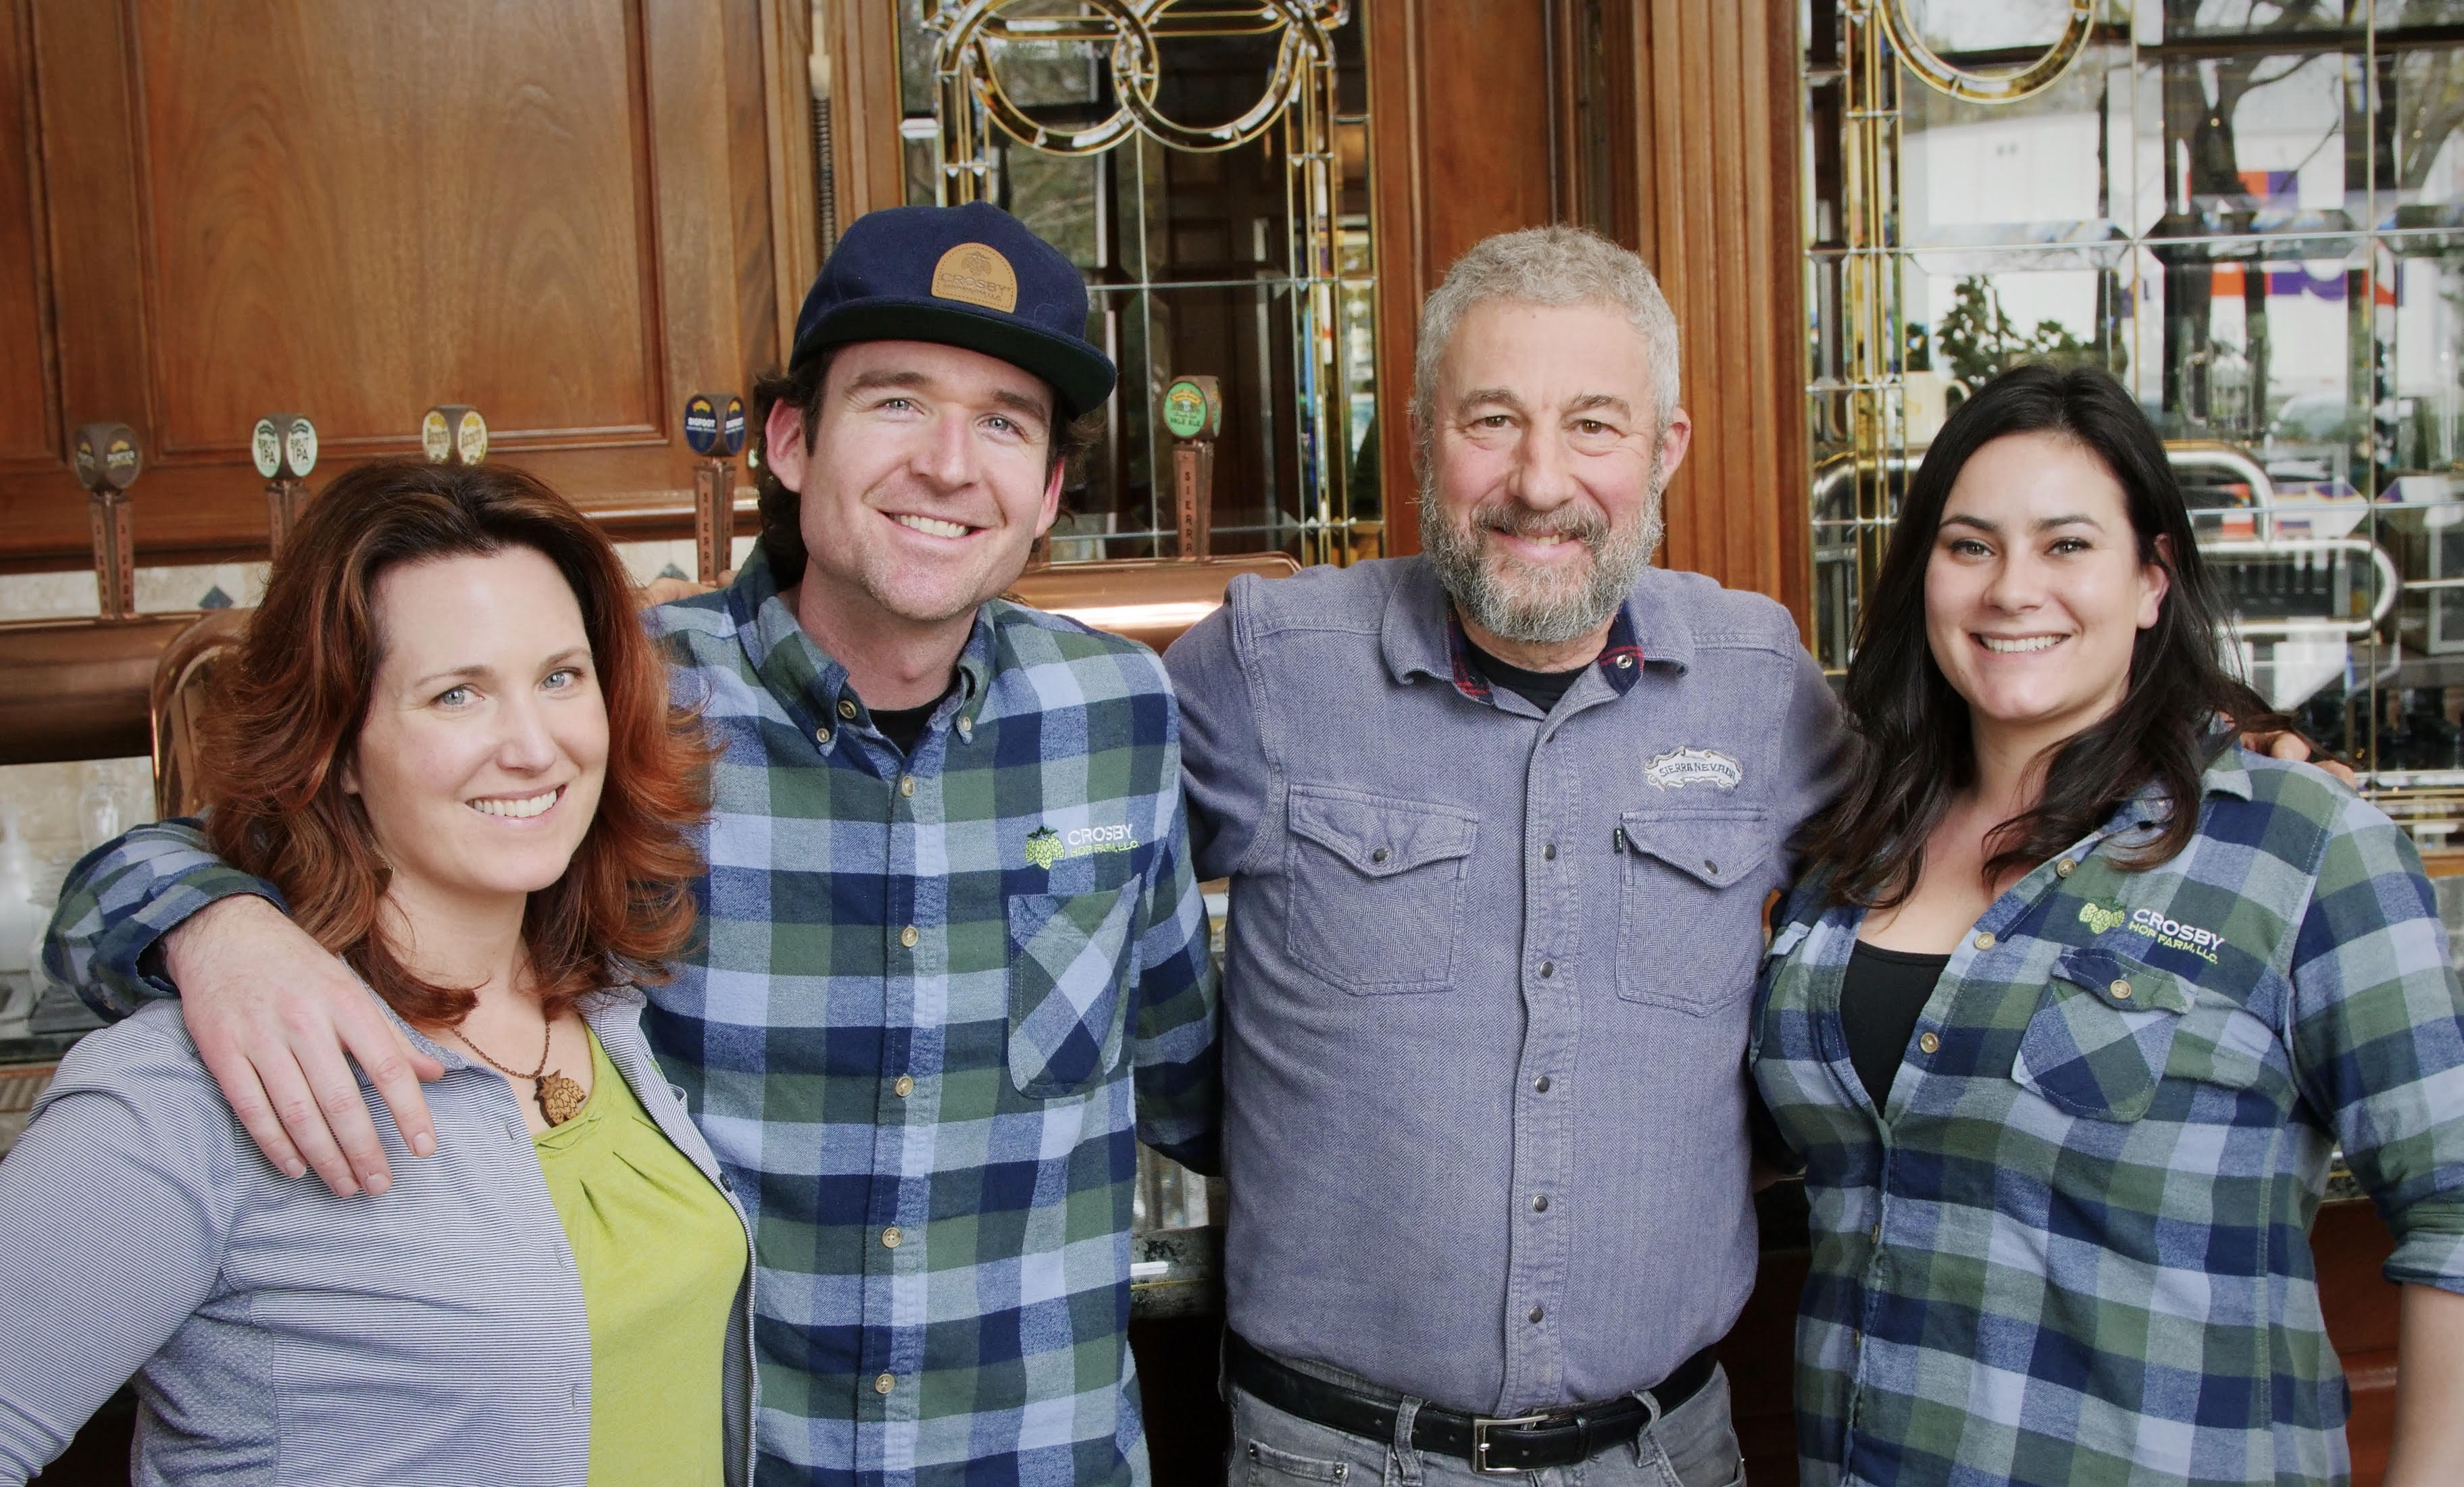 Heather Sorensen, Zak Schroerlucke, Ken Grossman and Kate Belanger at Sierra Nevada Brewing. (image courtesy of Crosby Hop Farm)